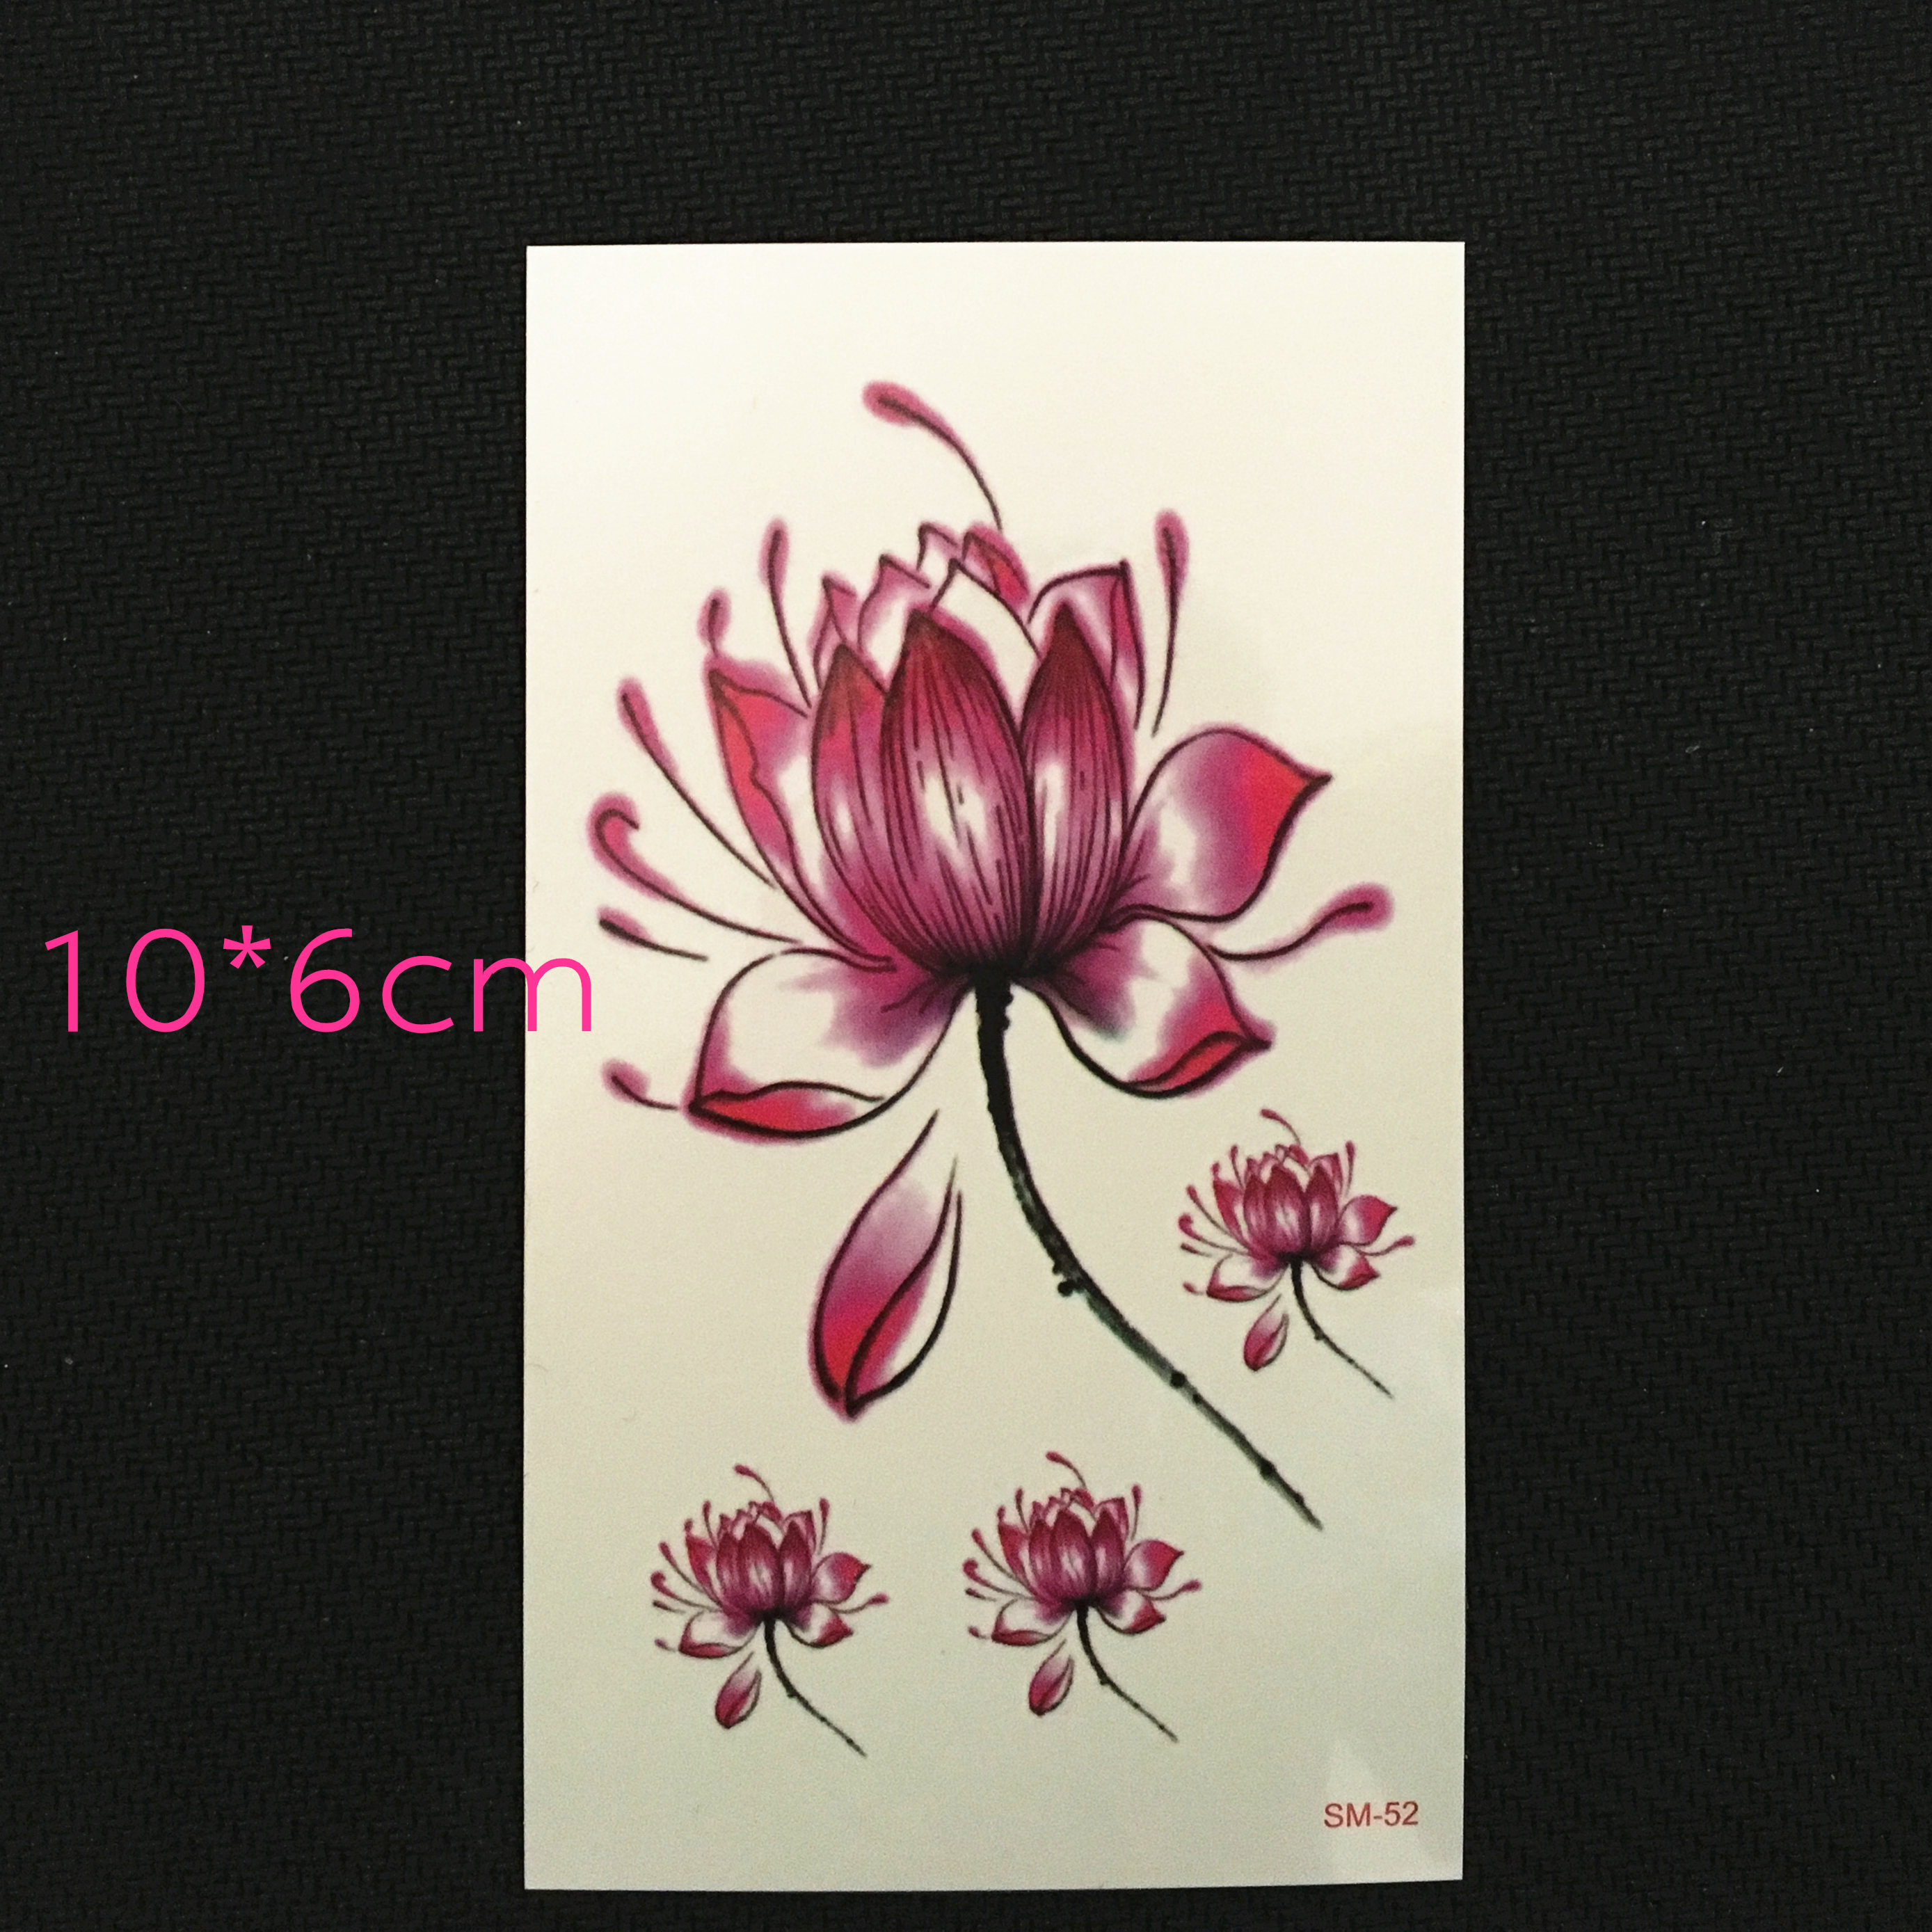 Hematoxylin original lotus waterproof tattoo stickers girls chest hematoxylin original lotus waterproof tattoo stickers girls chest flowers waterproof tattoo stickers lasting realistic small fresh izmirmasajfo